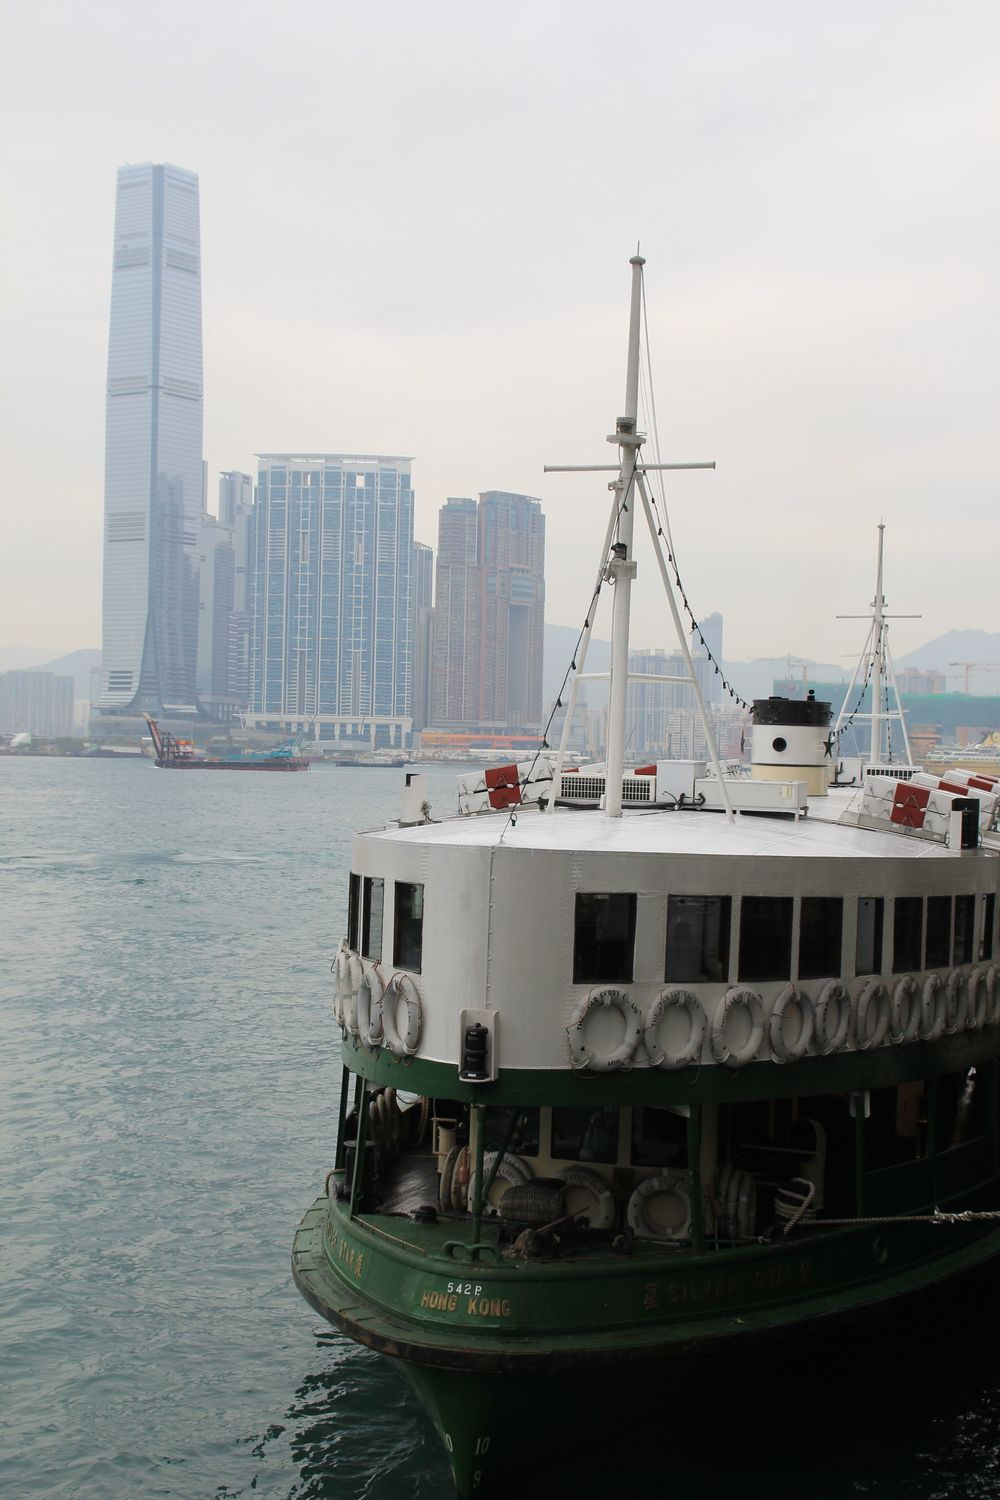 Star Ferry at the dock on Hong Kong island.